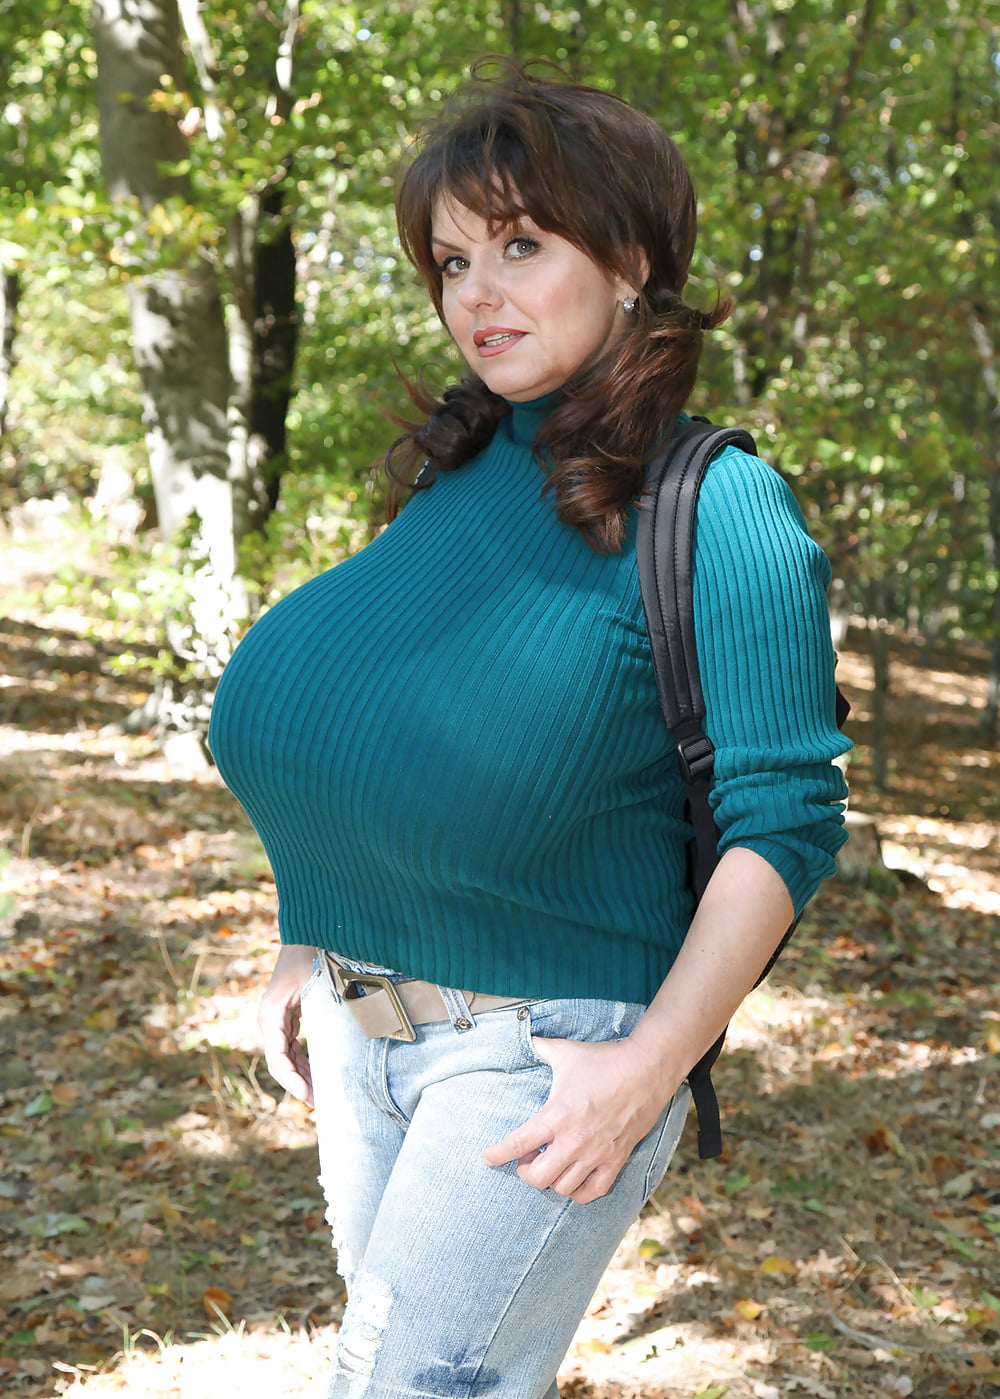 Big Boobs In Tight Sweaters